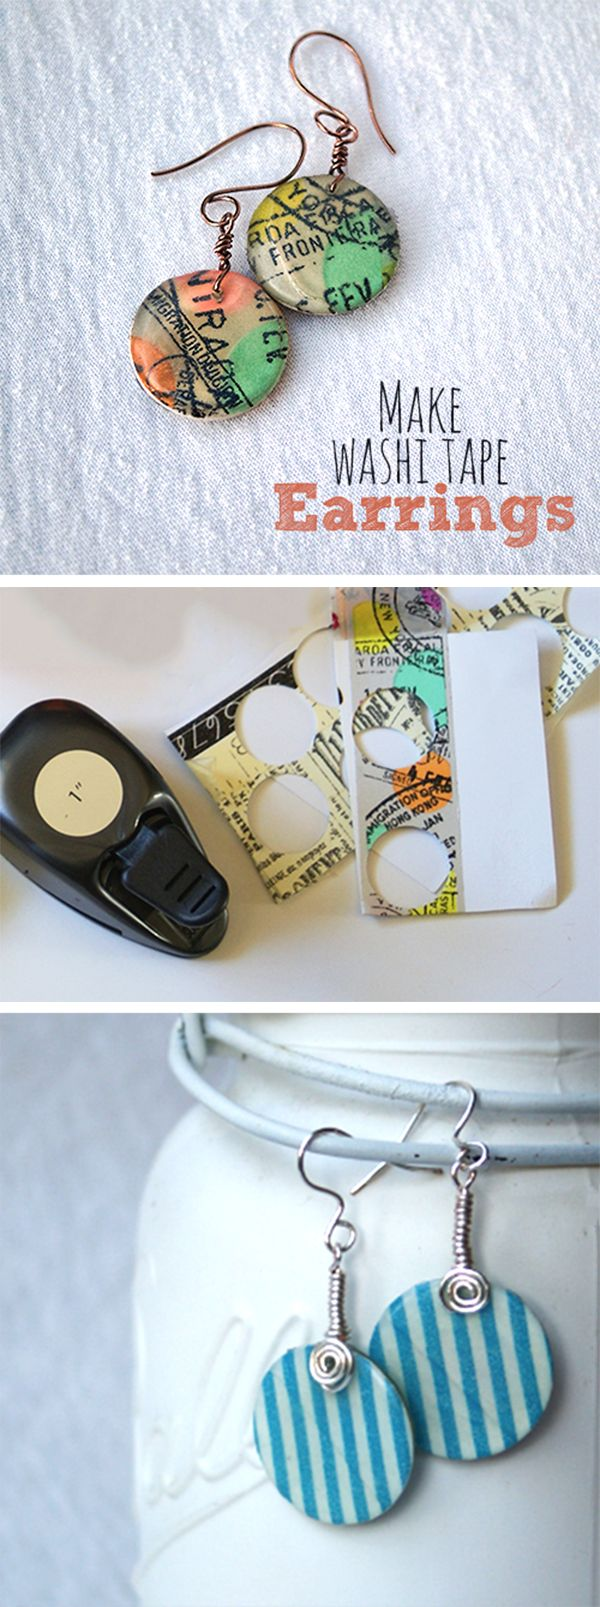 Make easy Washi Tape Earrings with Mod Podge and a circle punch! I just got Washi Tape for Christmas!!!